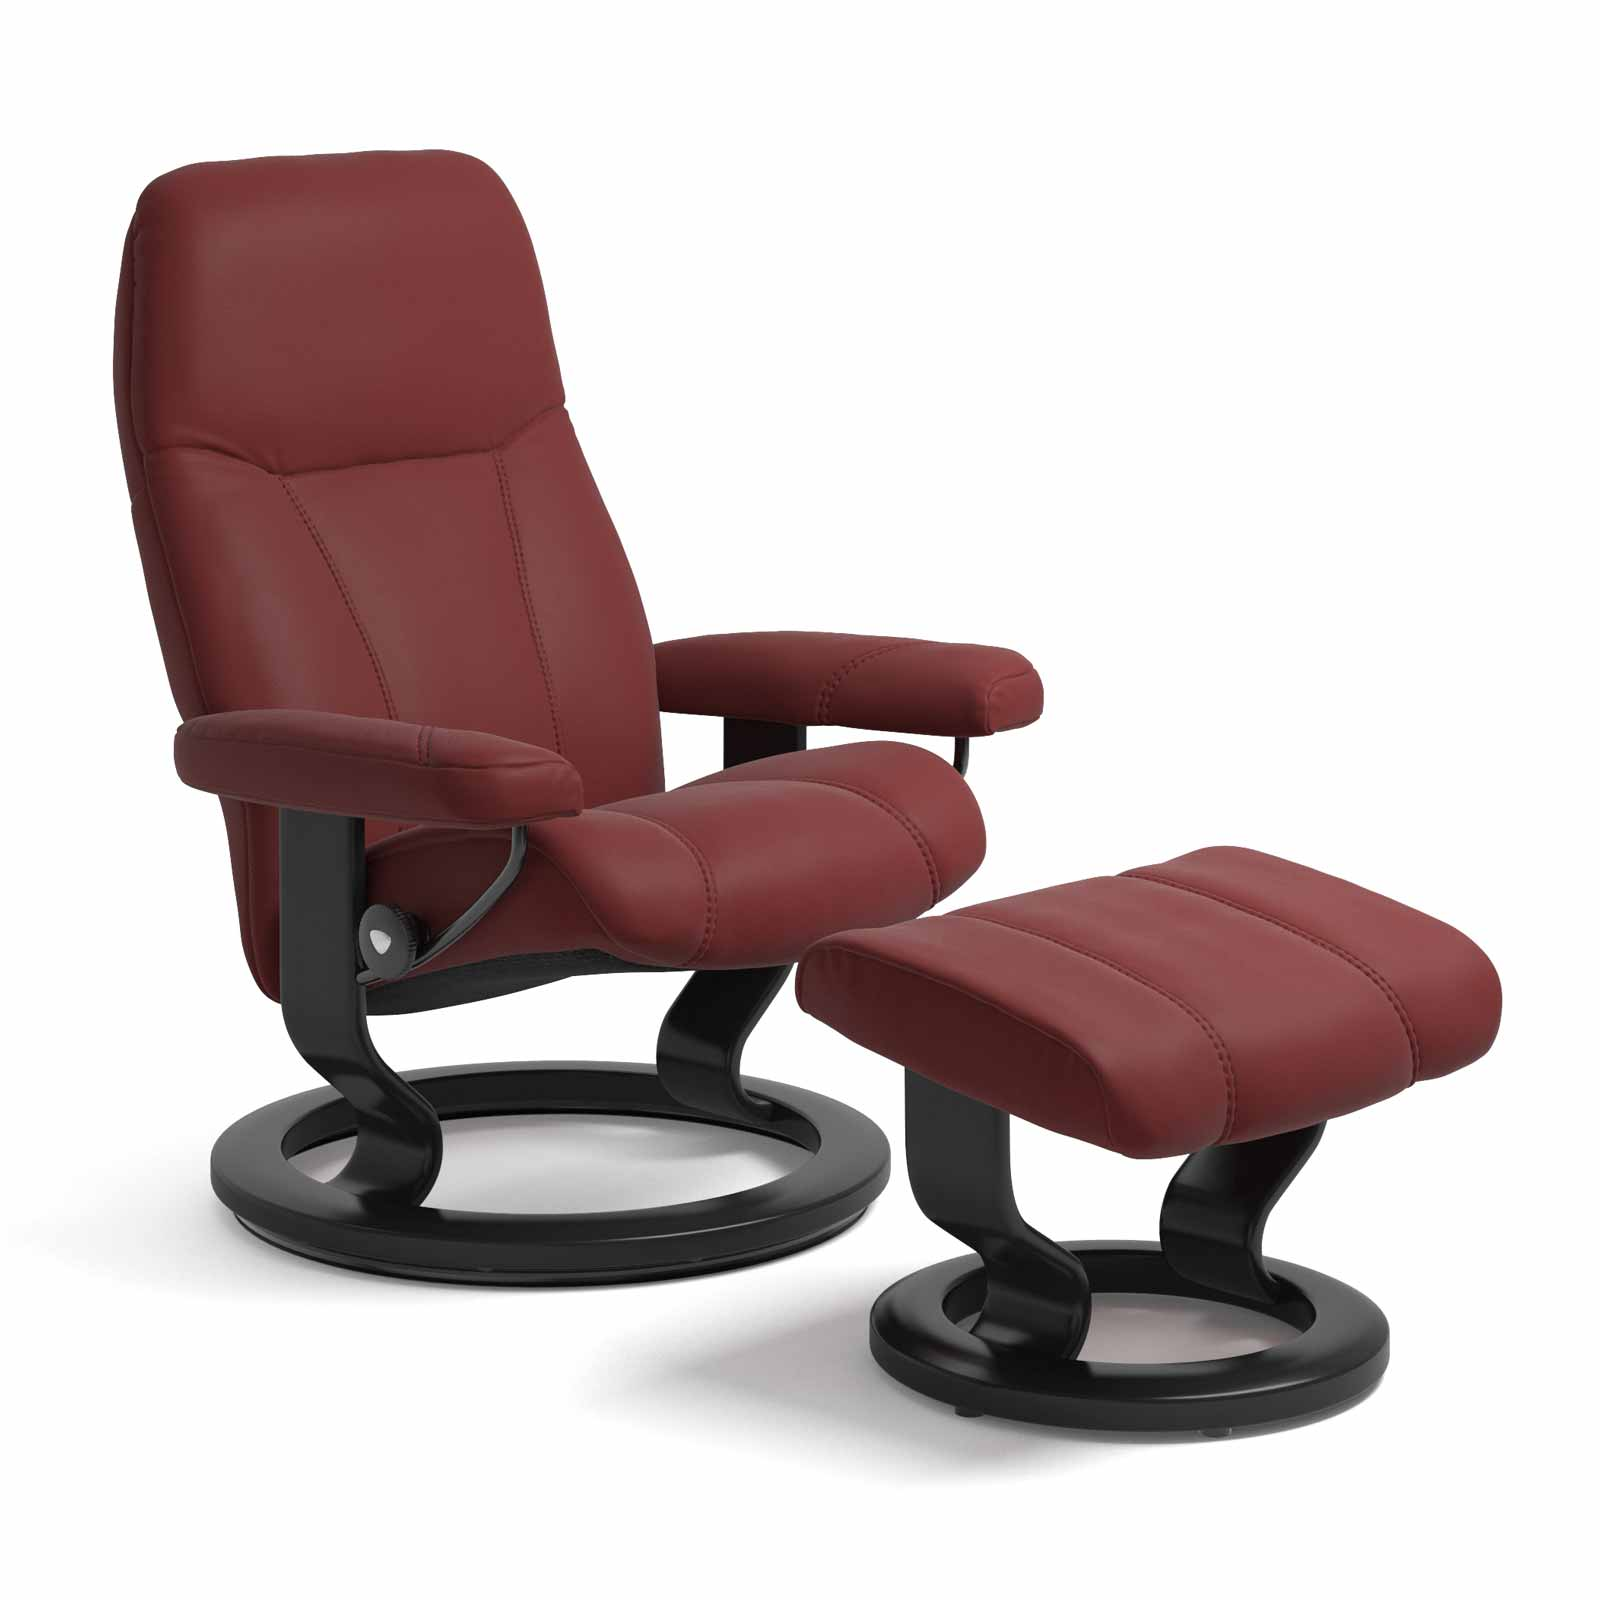 Stressless Sessel Aktion Stressless Consul Classic Paloma Cherry Mit Hocker